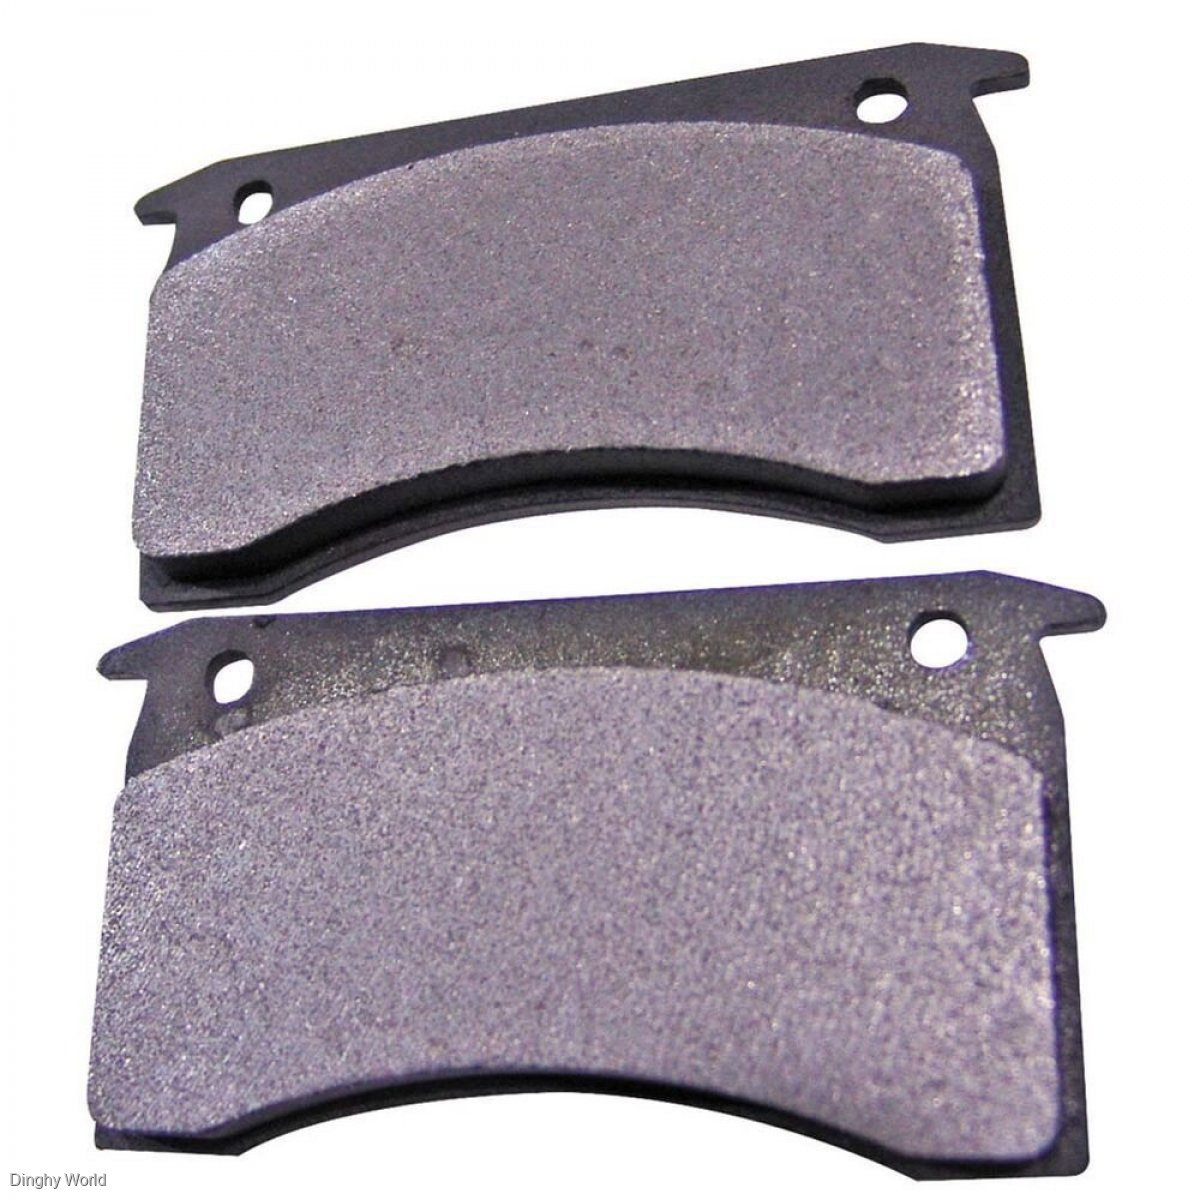 ARK DISC BRAKE PAD TWIN SET - ONLY $ 24.00 / DONT PAY $ 29.00